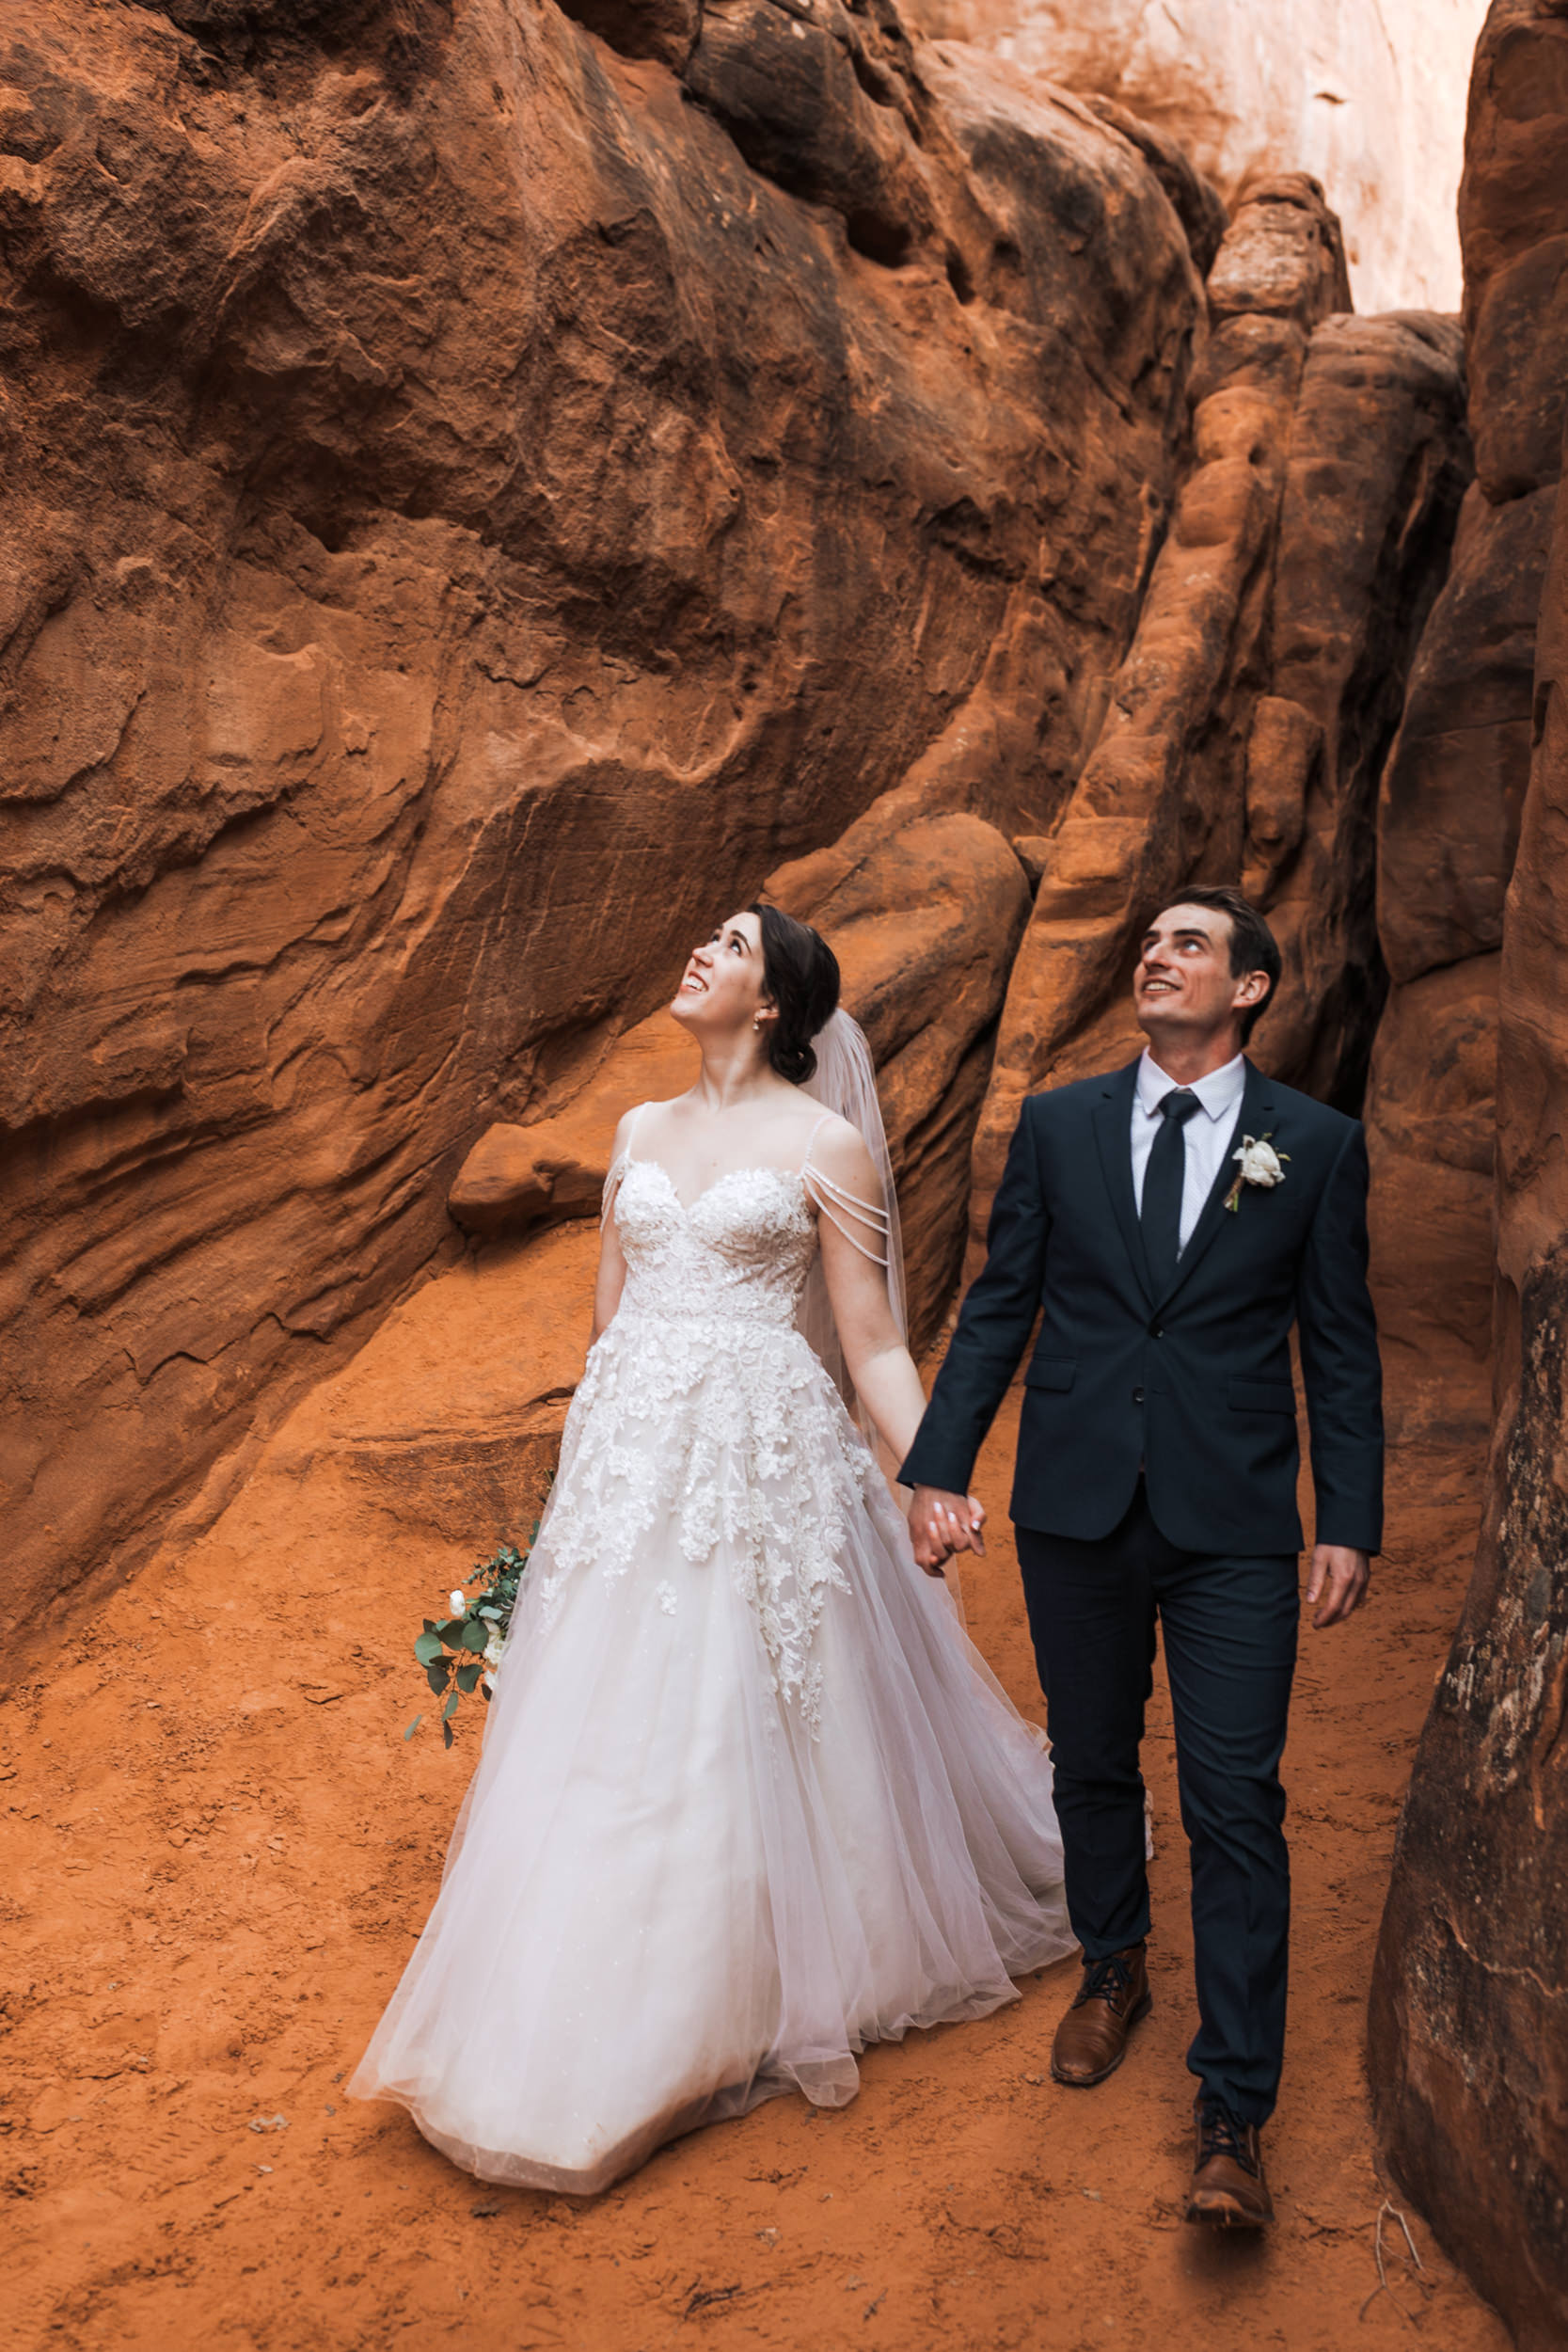 Brides that hike often love the dirt getting on their dresses and opt for boots over shoes!